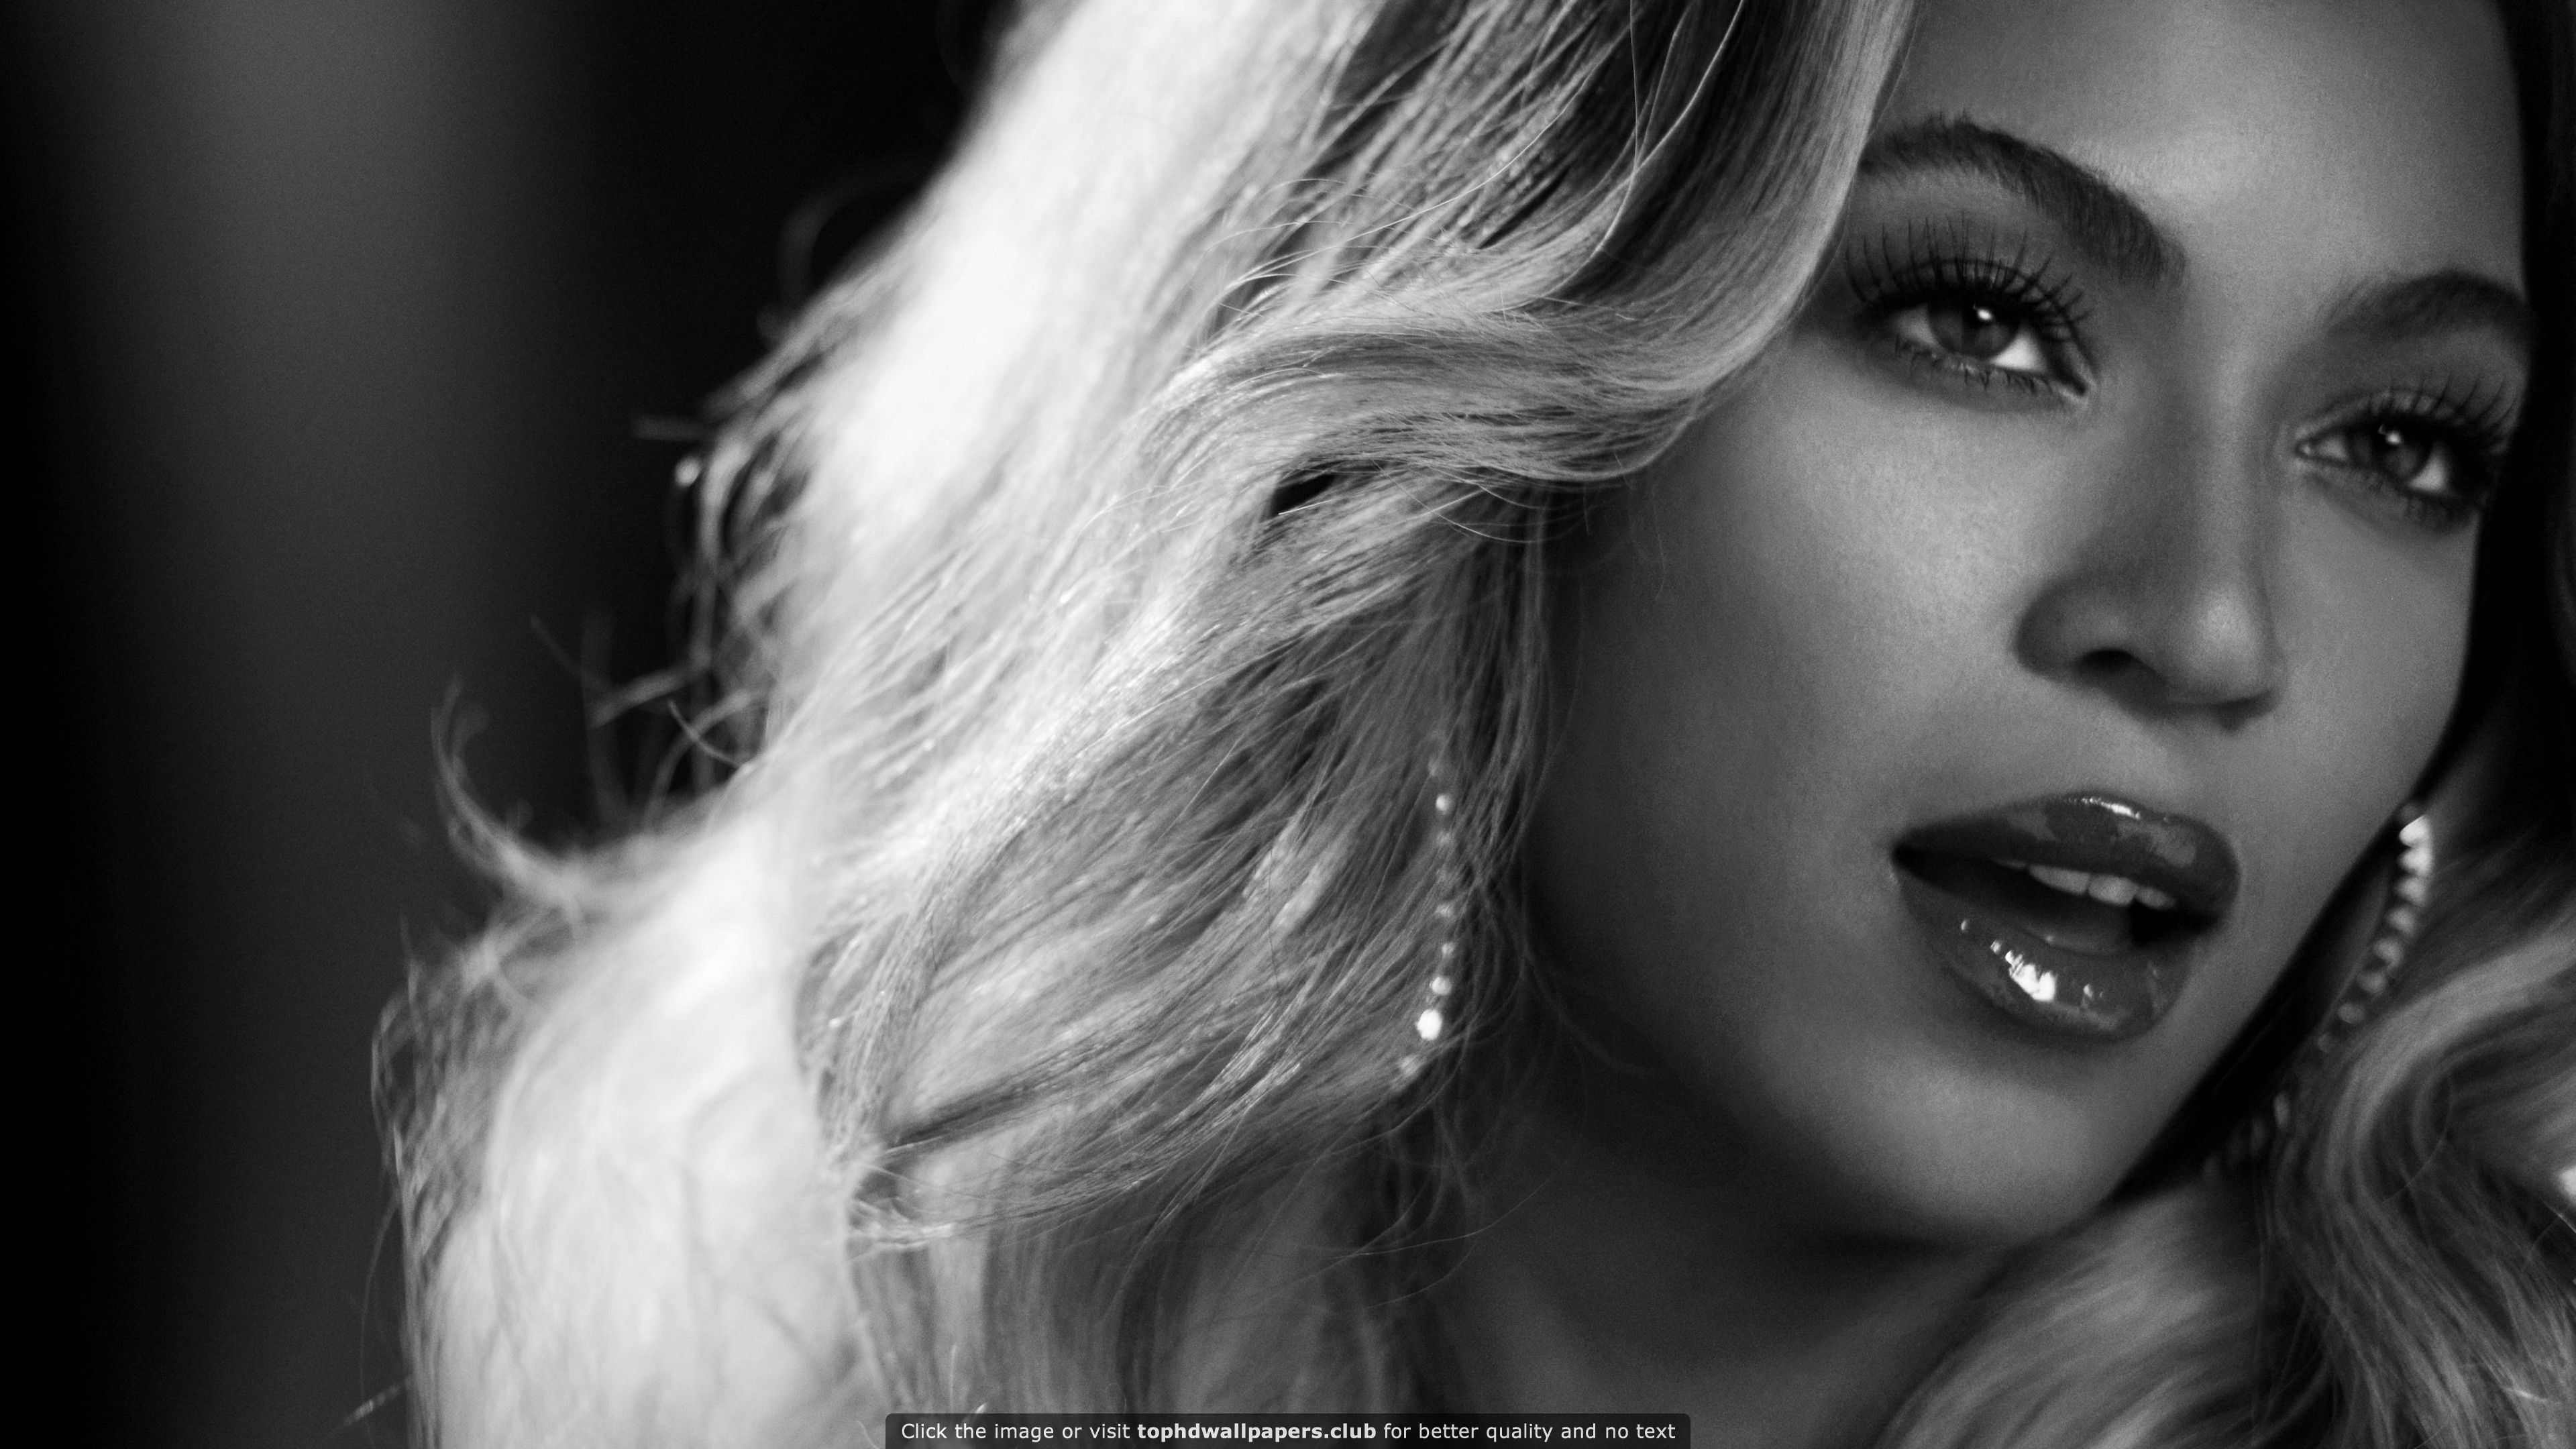 Beyonce in Black and White HD wallpaper for your PC, Mac